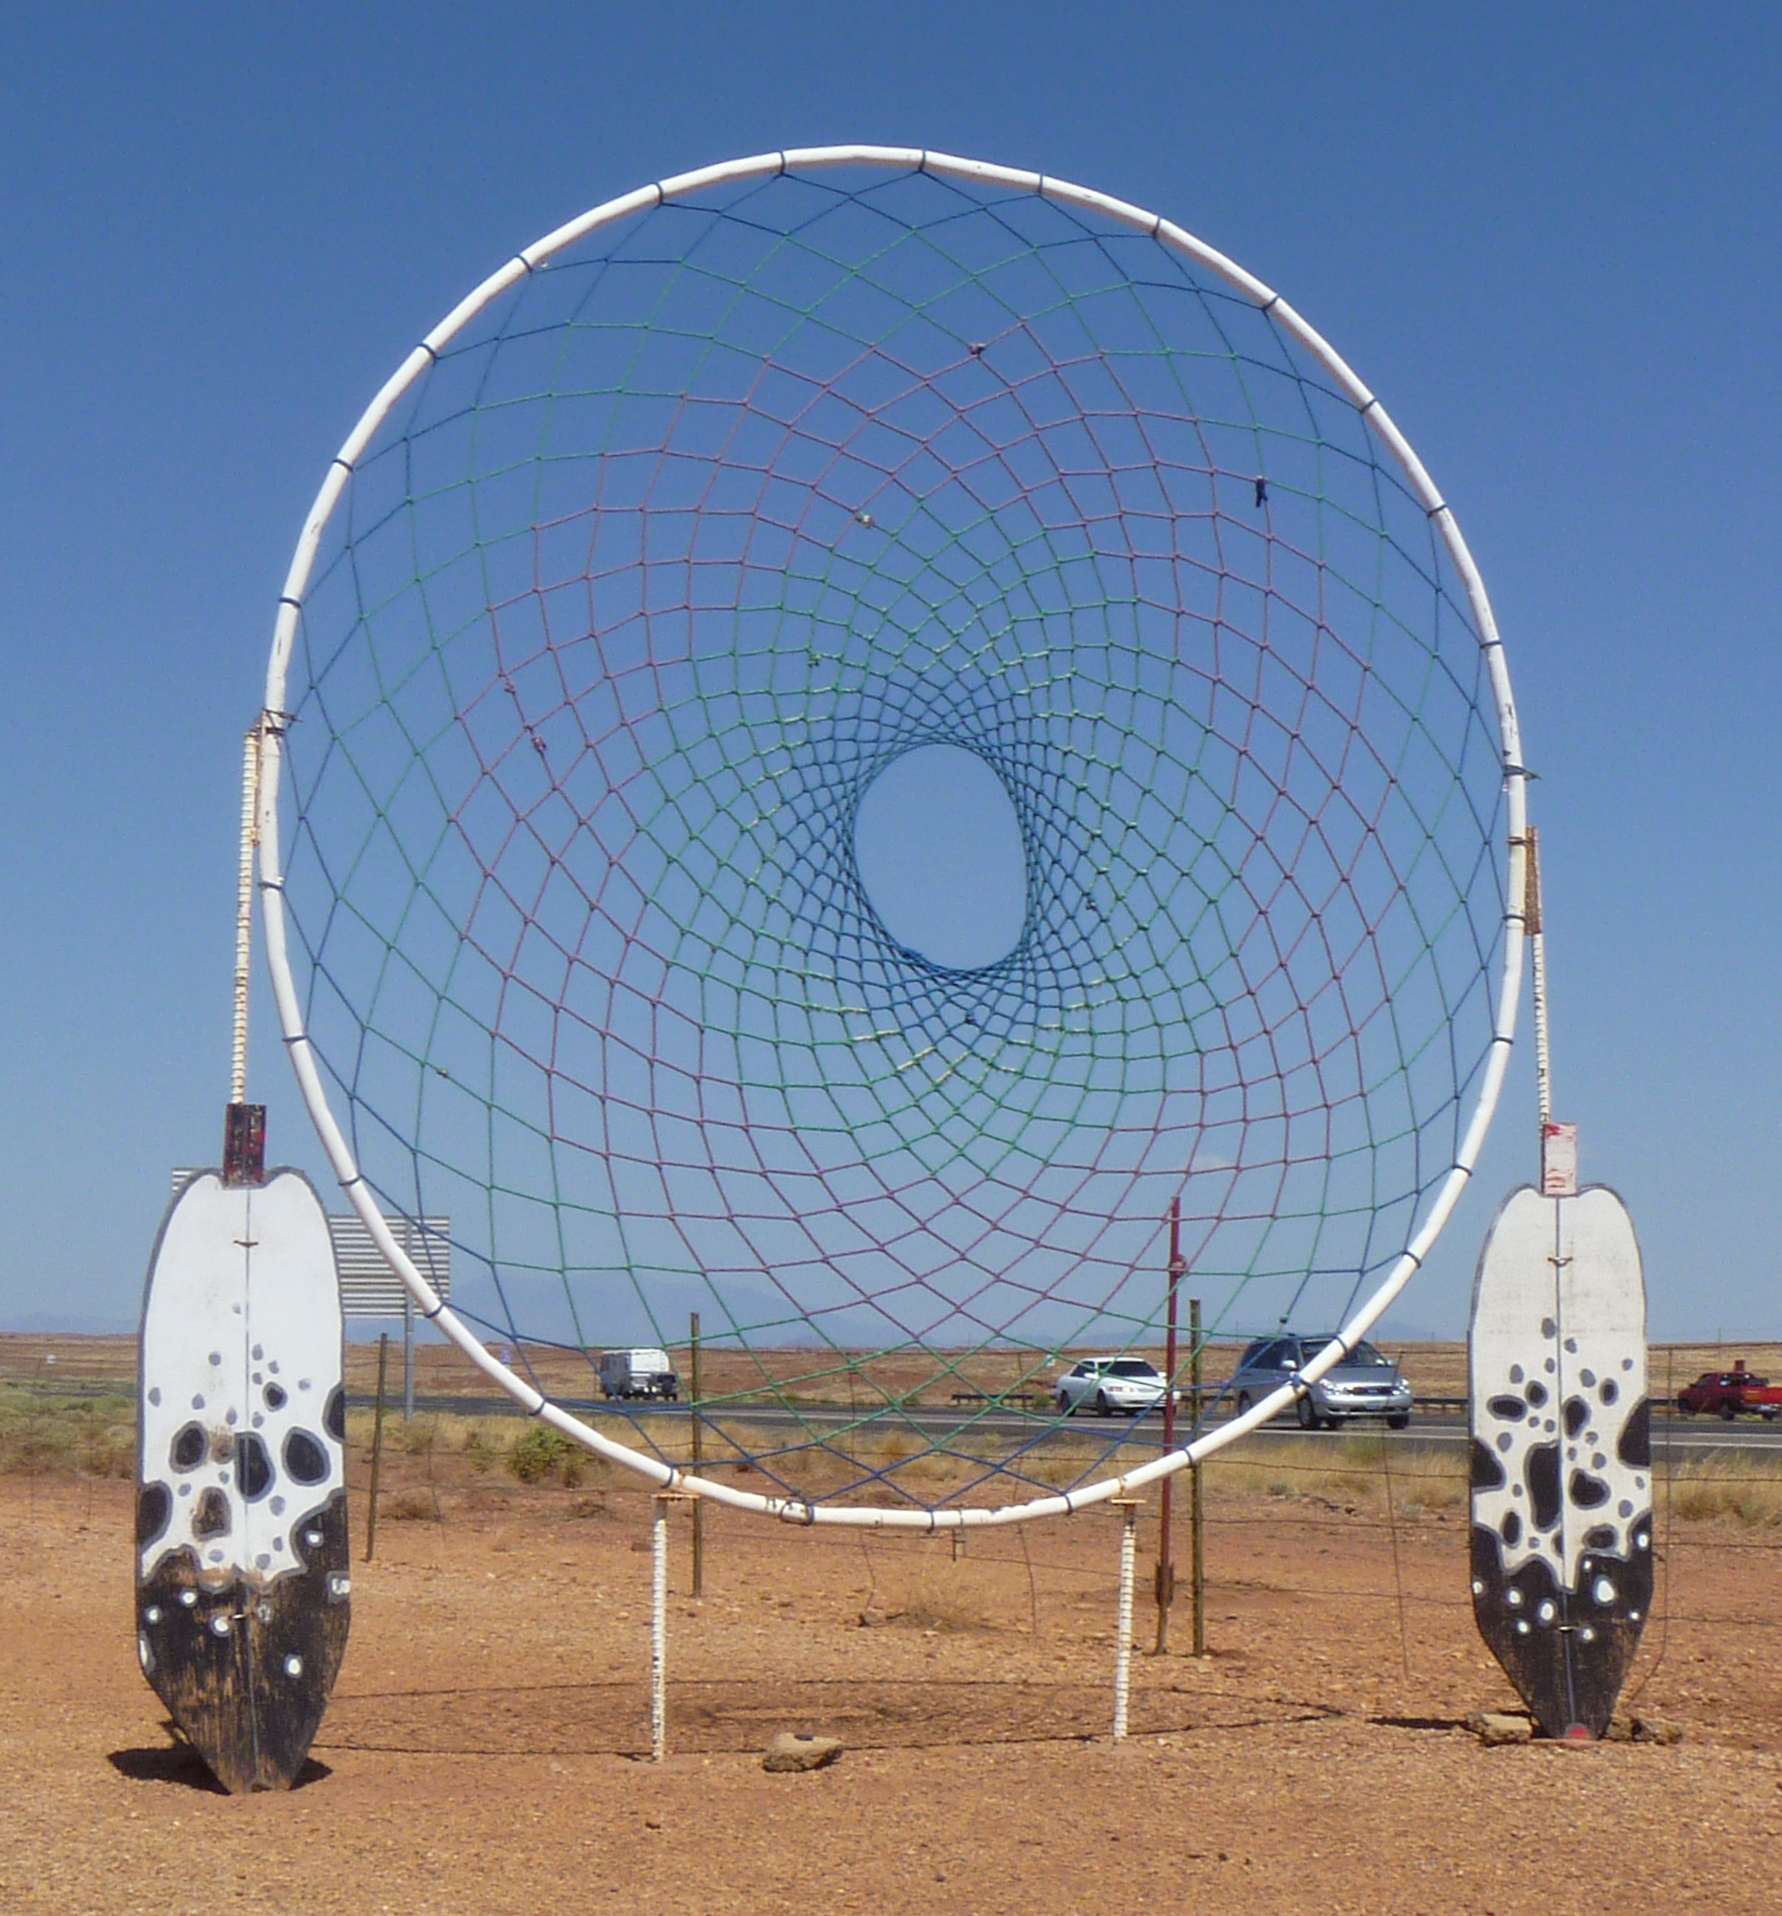 Huge Dream Catchers For Sale Day 40 Route 40 Holbrook AZ to Flagstaff AZ and on to Phoenix 38